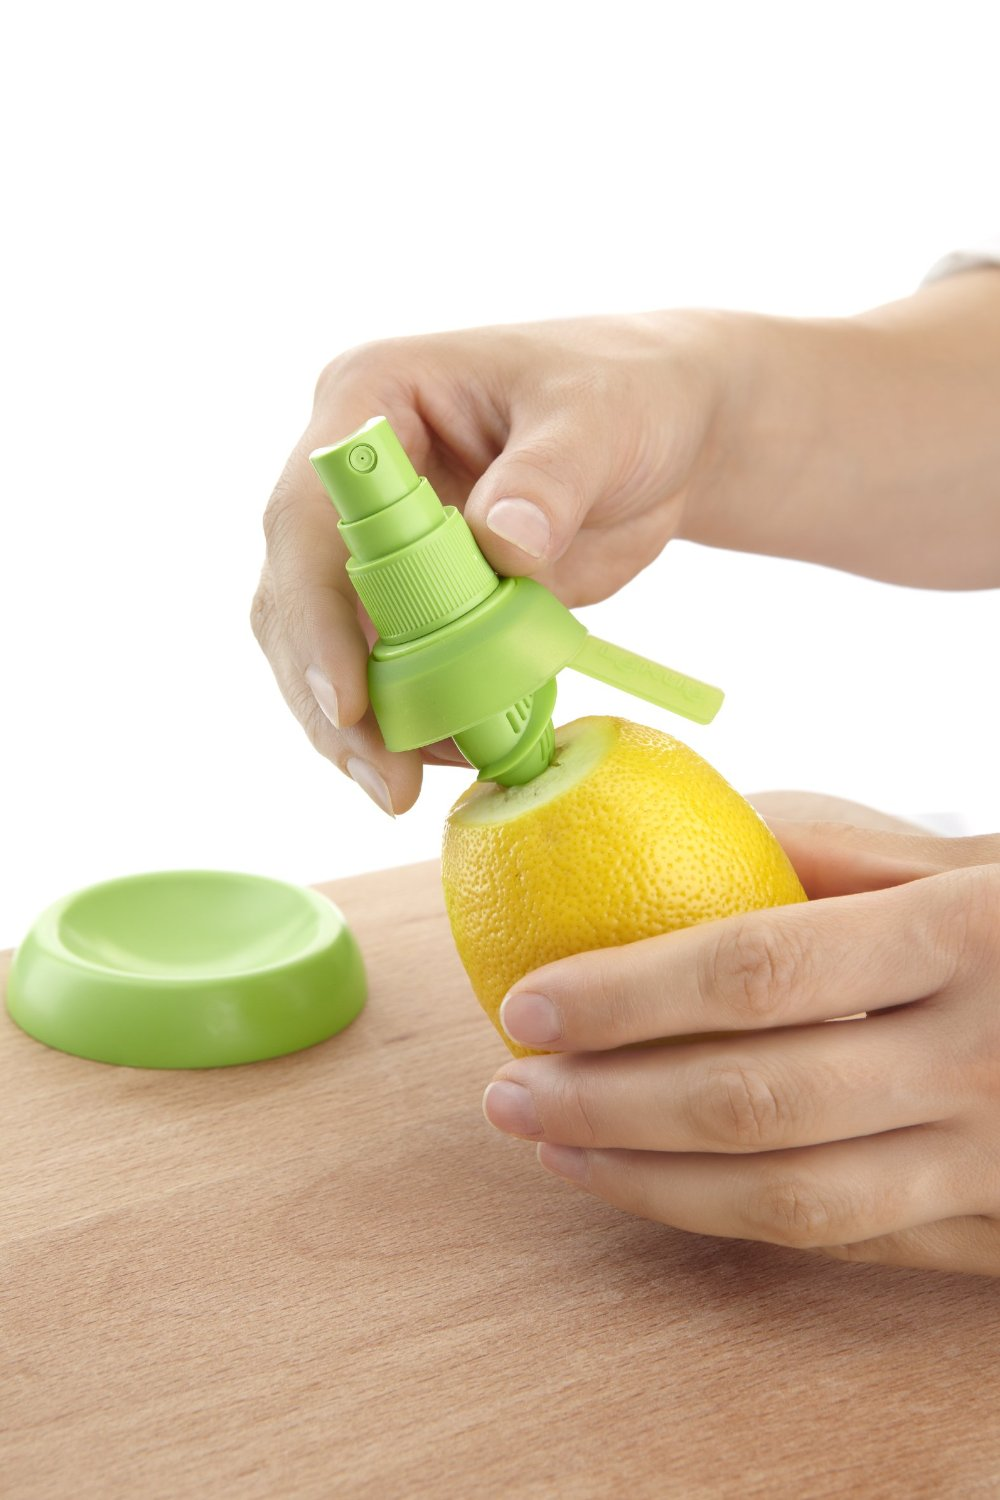 Natural fruit juic sprayer best gift idea 2013